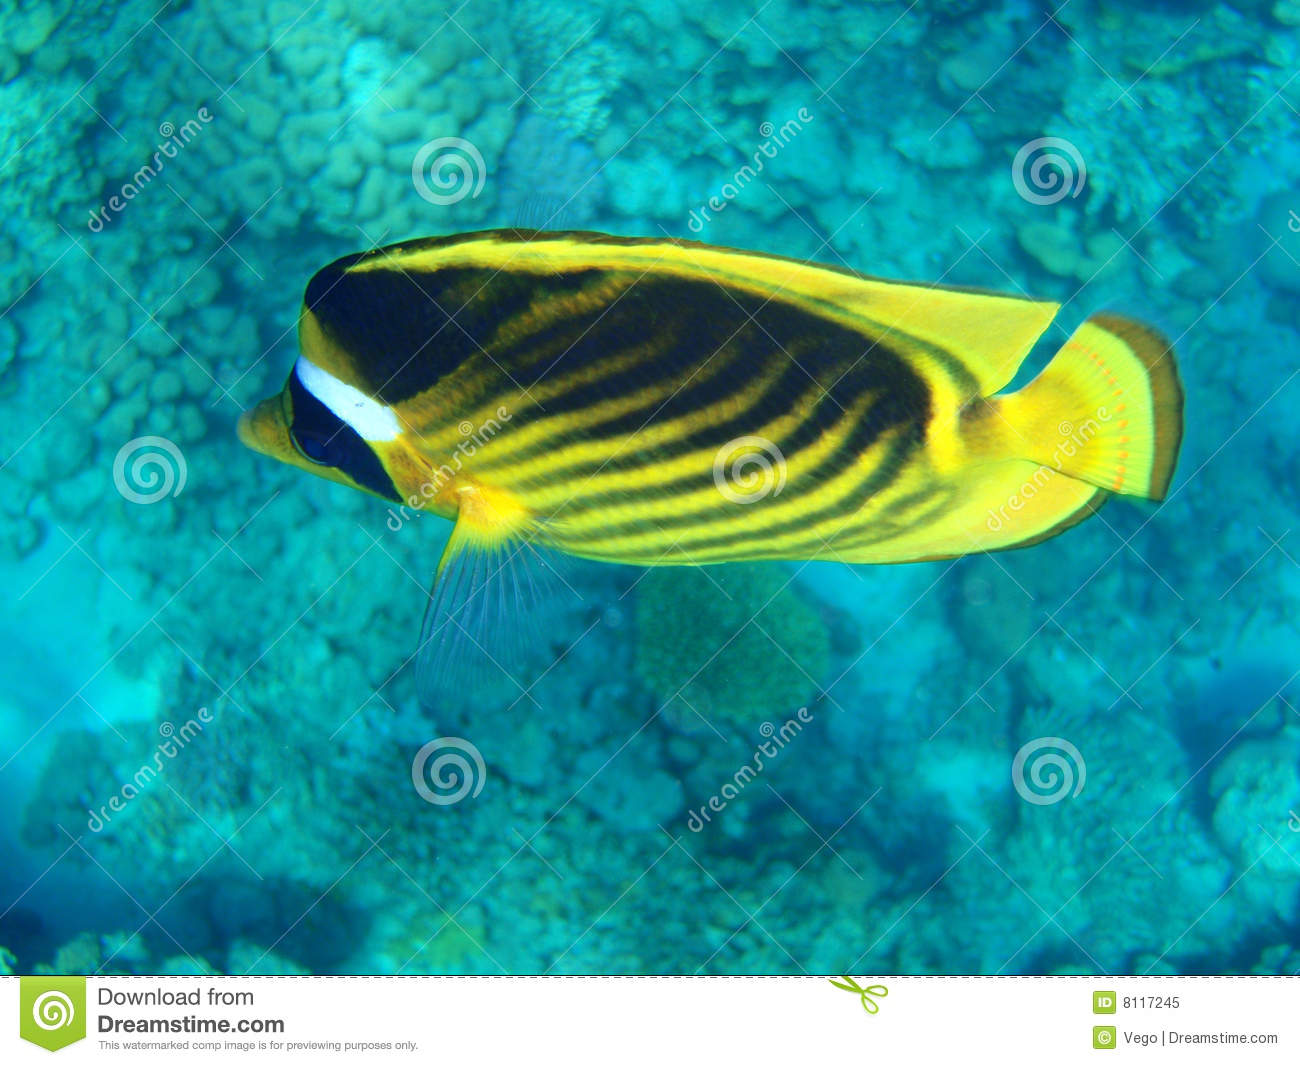 Coral reef fish yellow - photo#28